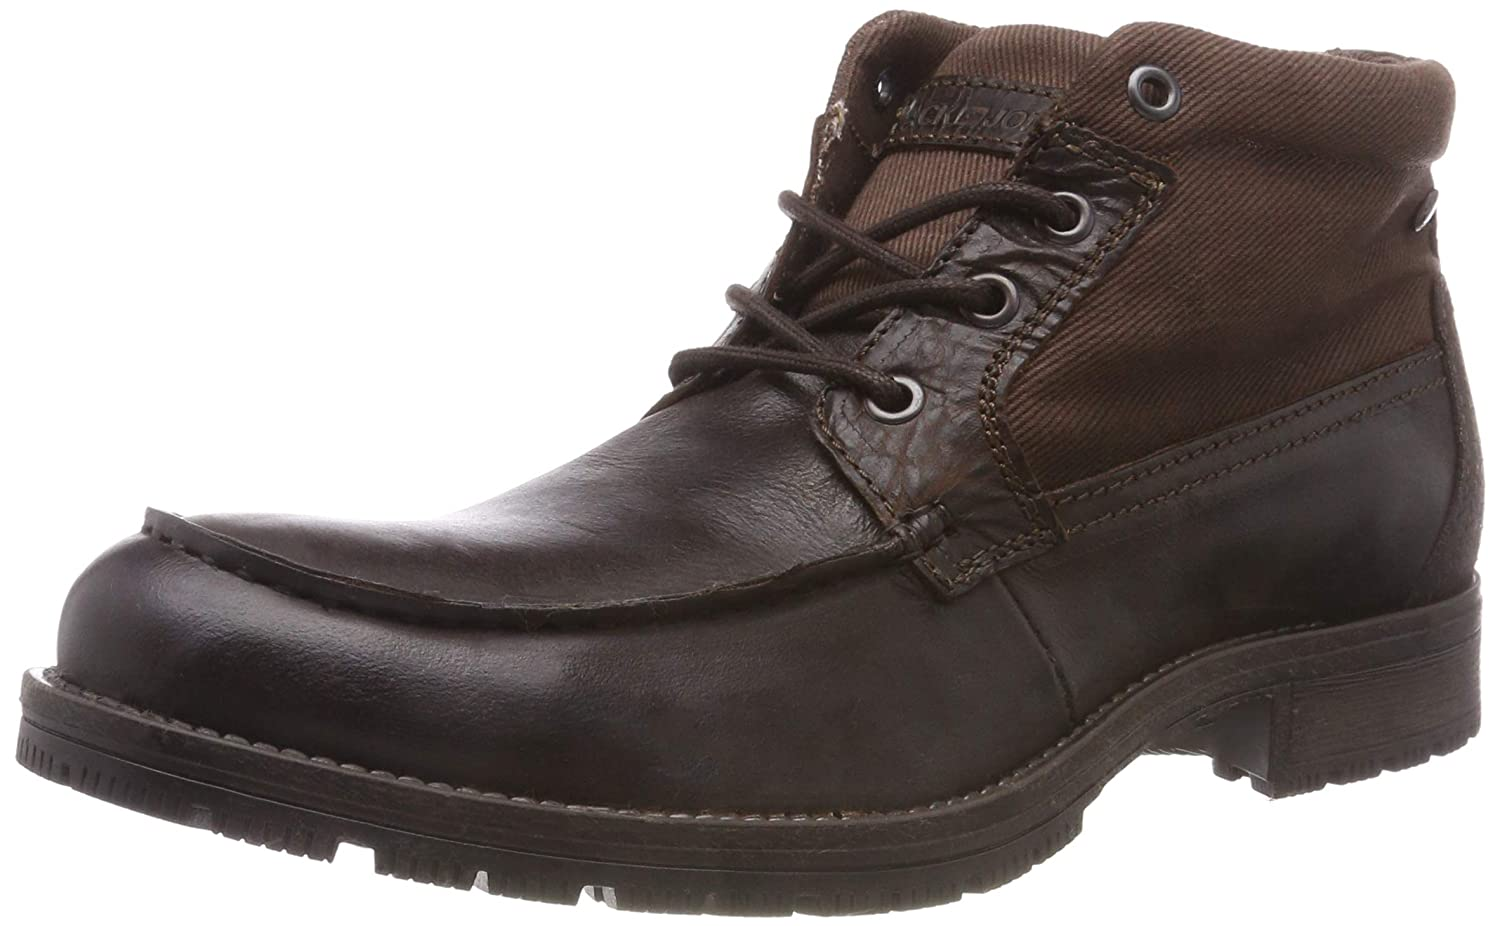 Jack & Jones Jfwforest Mid Brown Stone, Botas Militar para Hombre